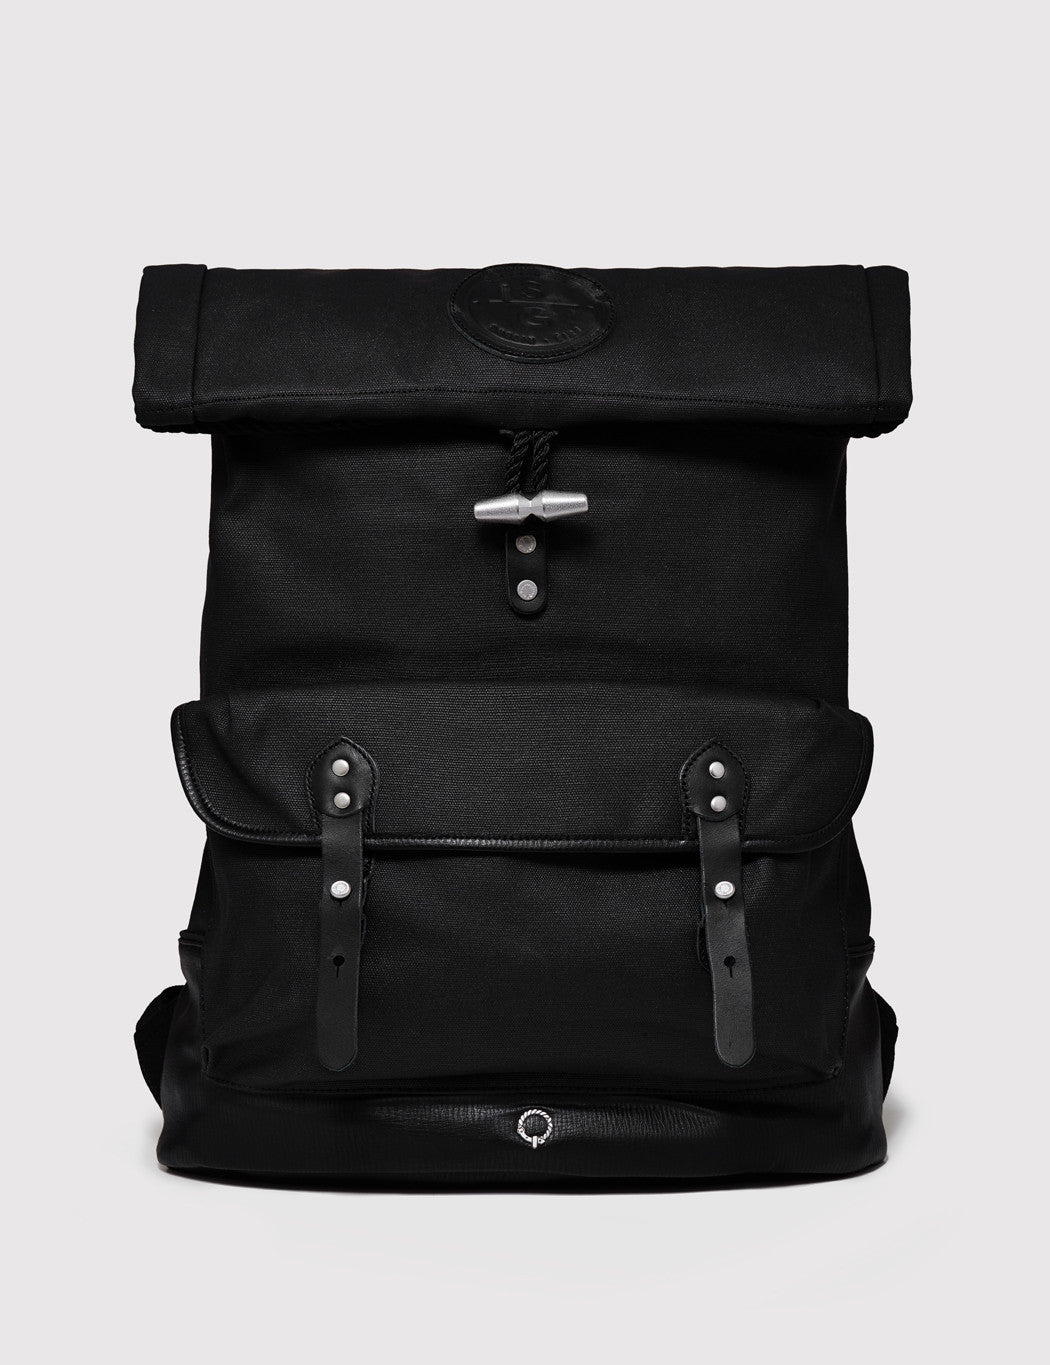 Stighlorgan Reilly Canvas Backpack - Black